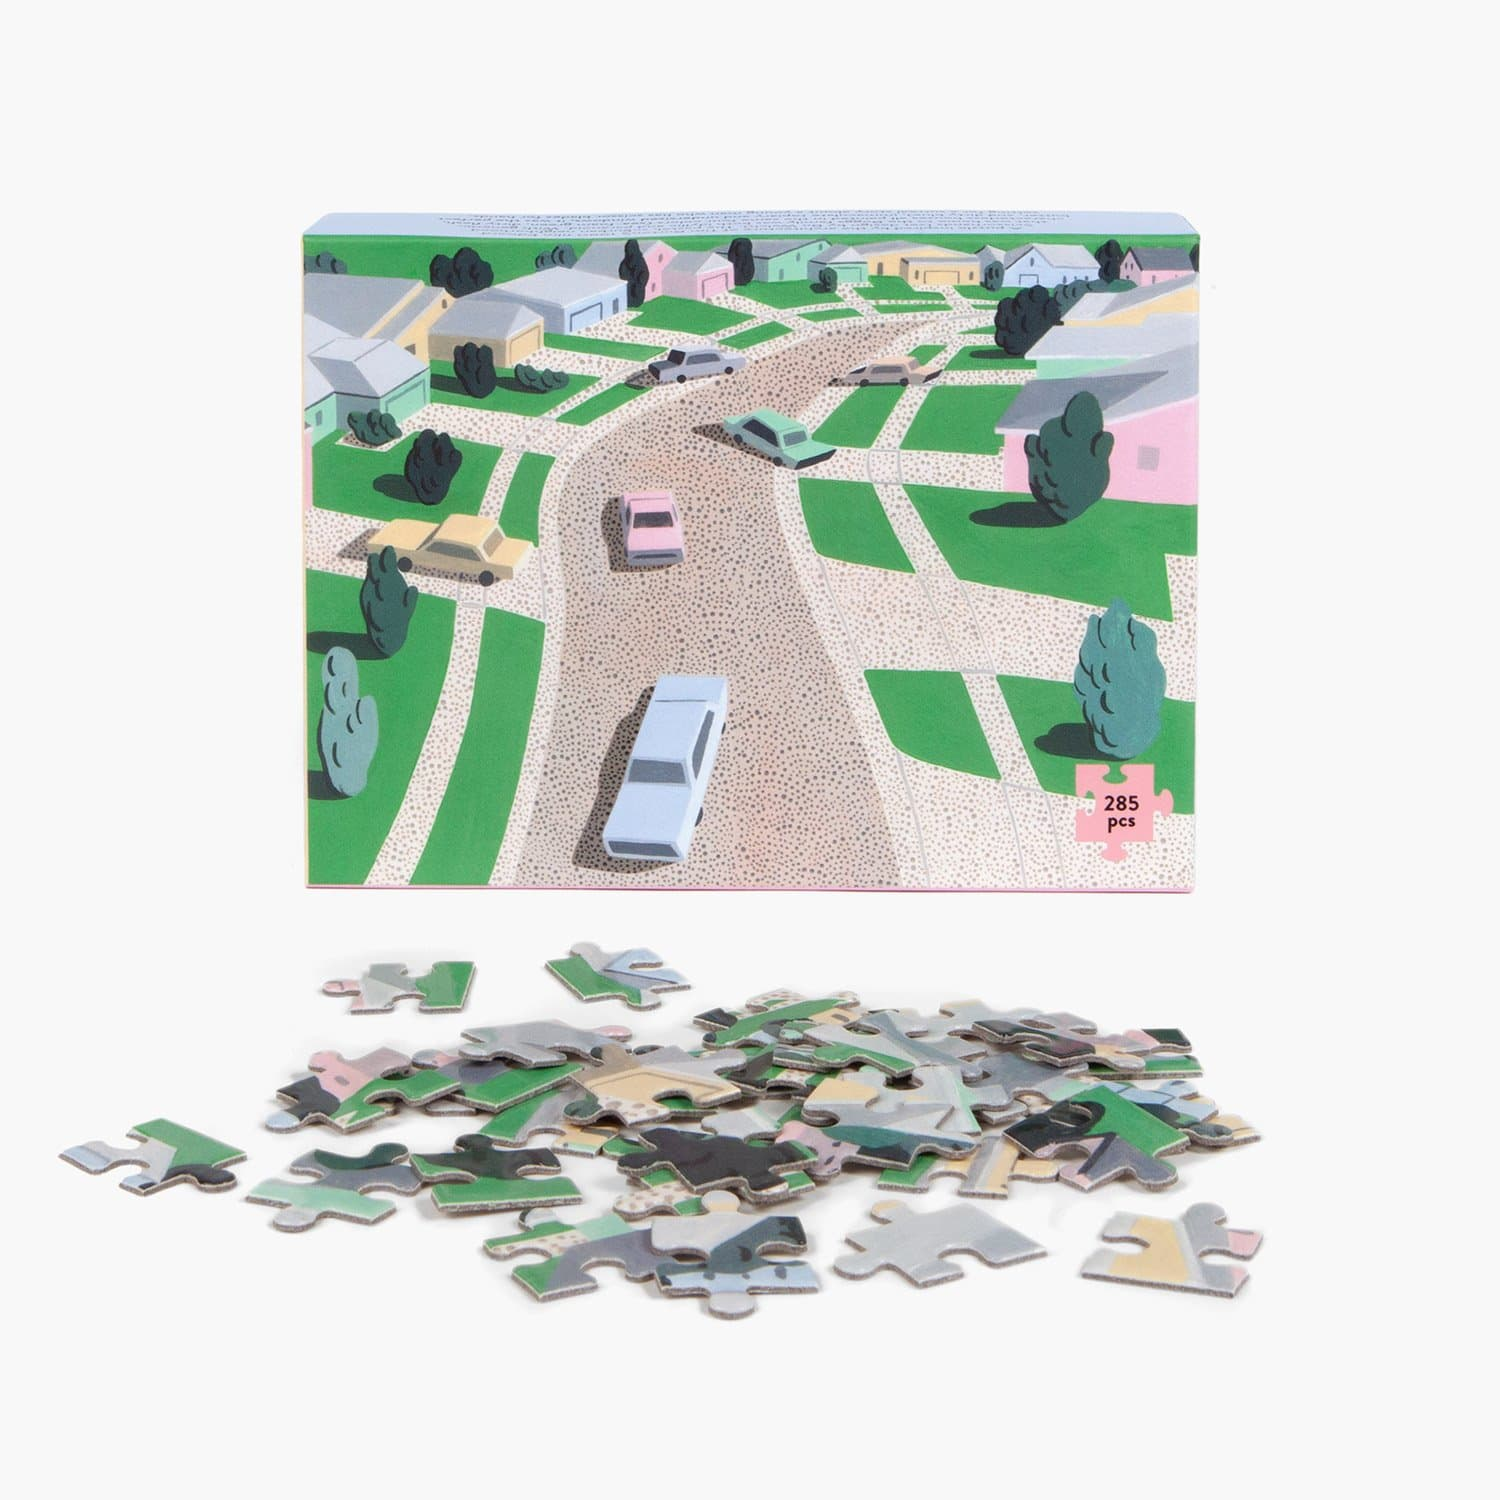 Pastel Suburbia Puzzle Activities, Arc Puzzle, Art Crafting,